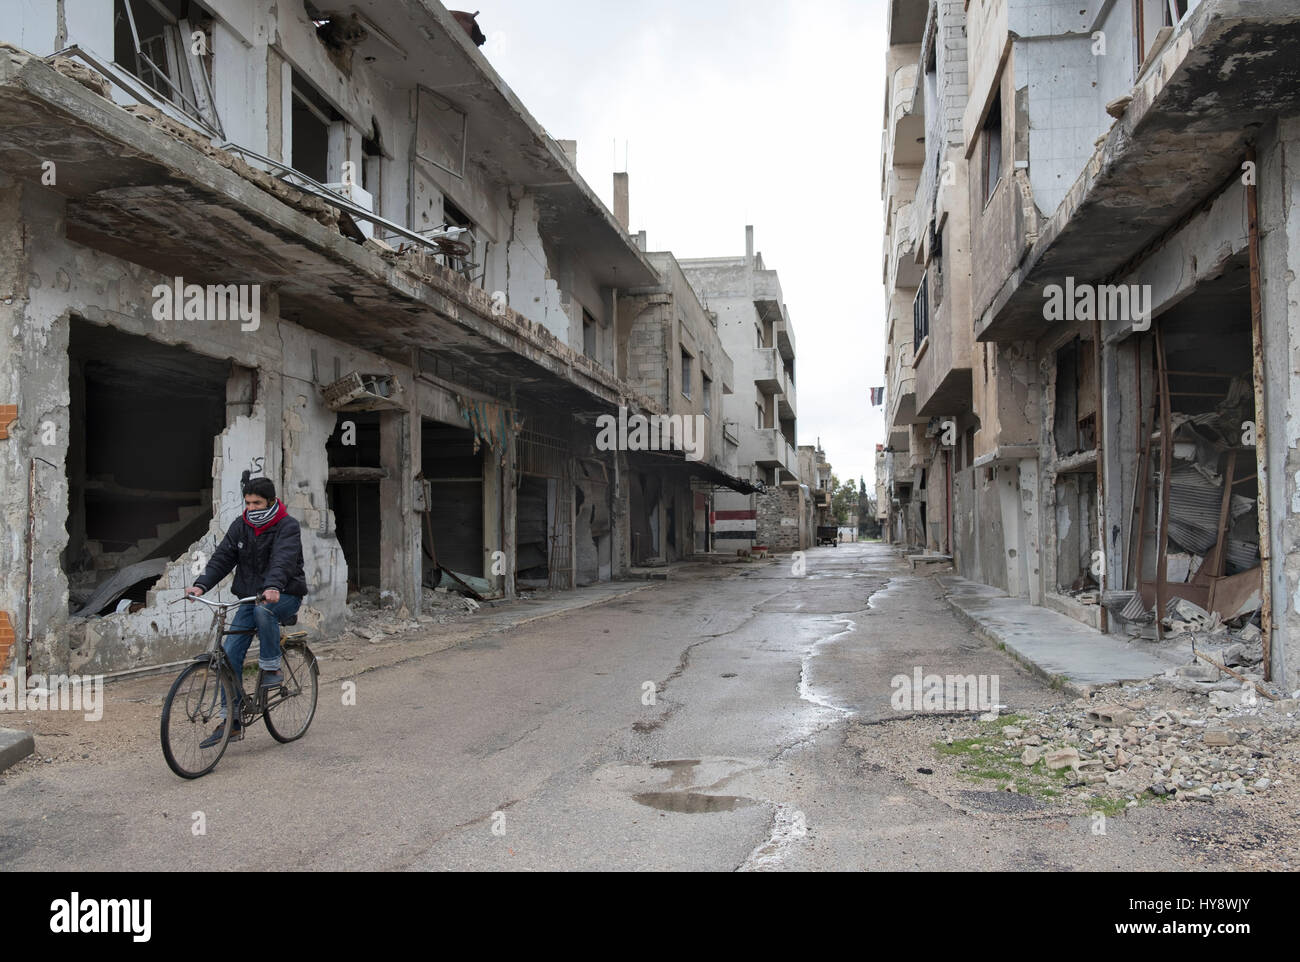 Bicycler in distressed district Baba Amr in Homs, Syria in early 2017 - Stock Image